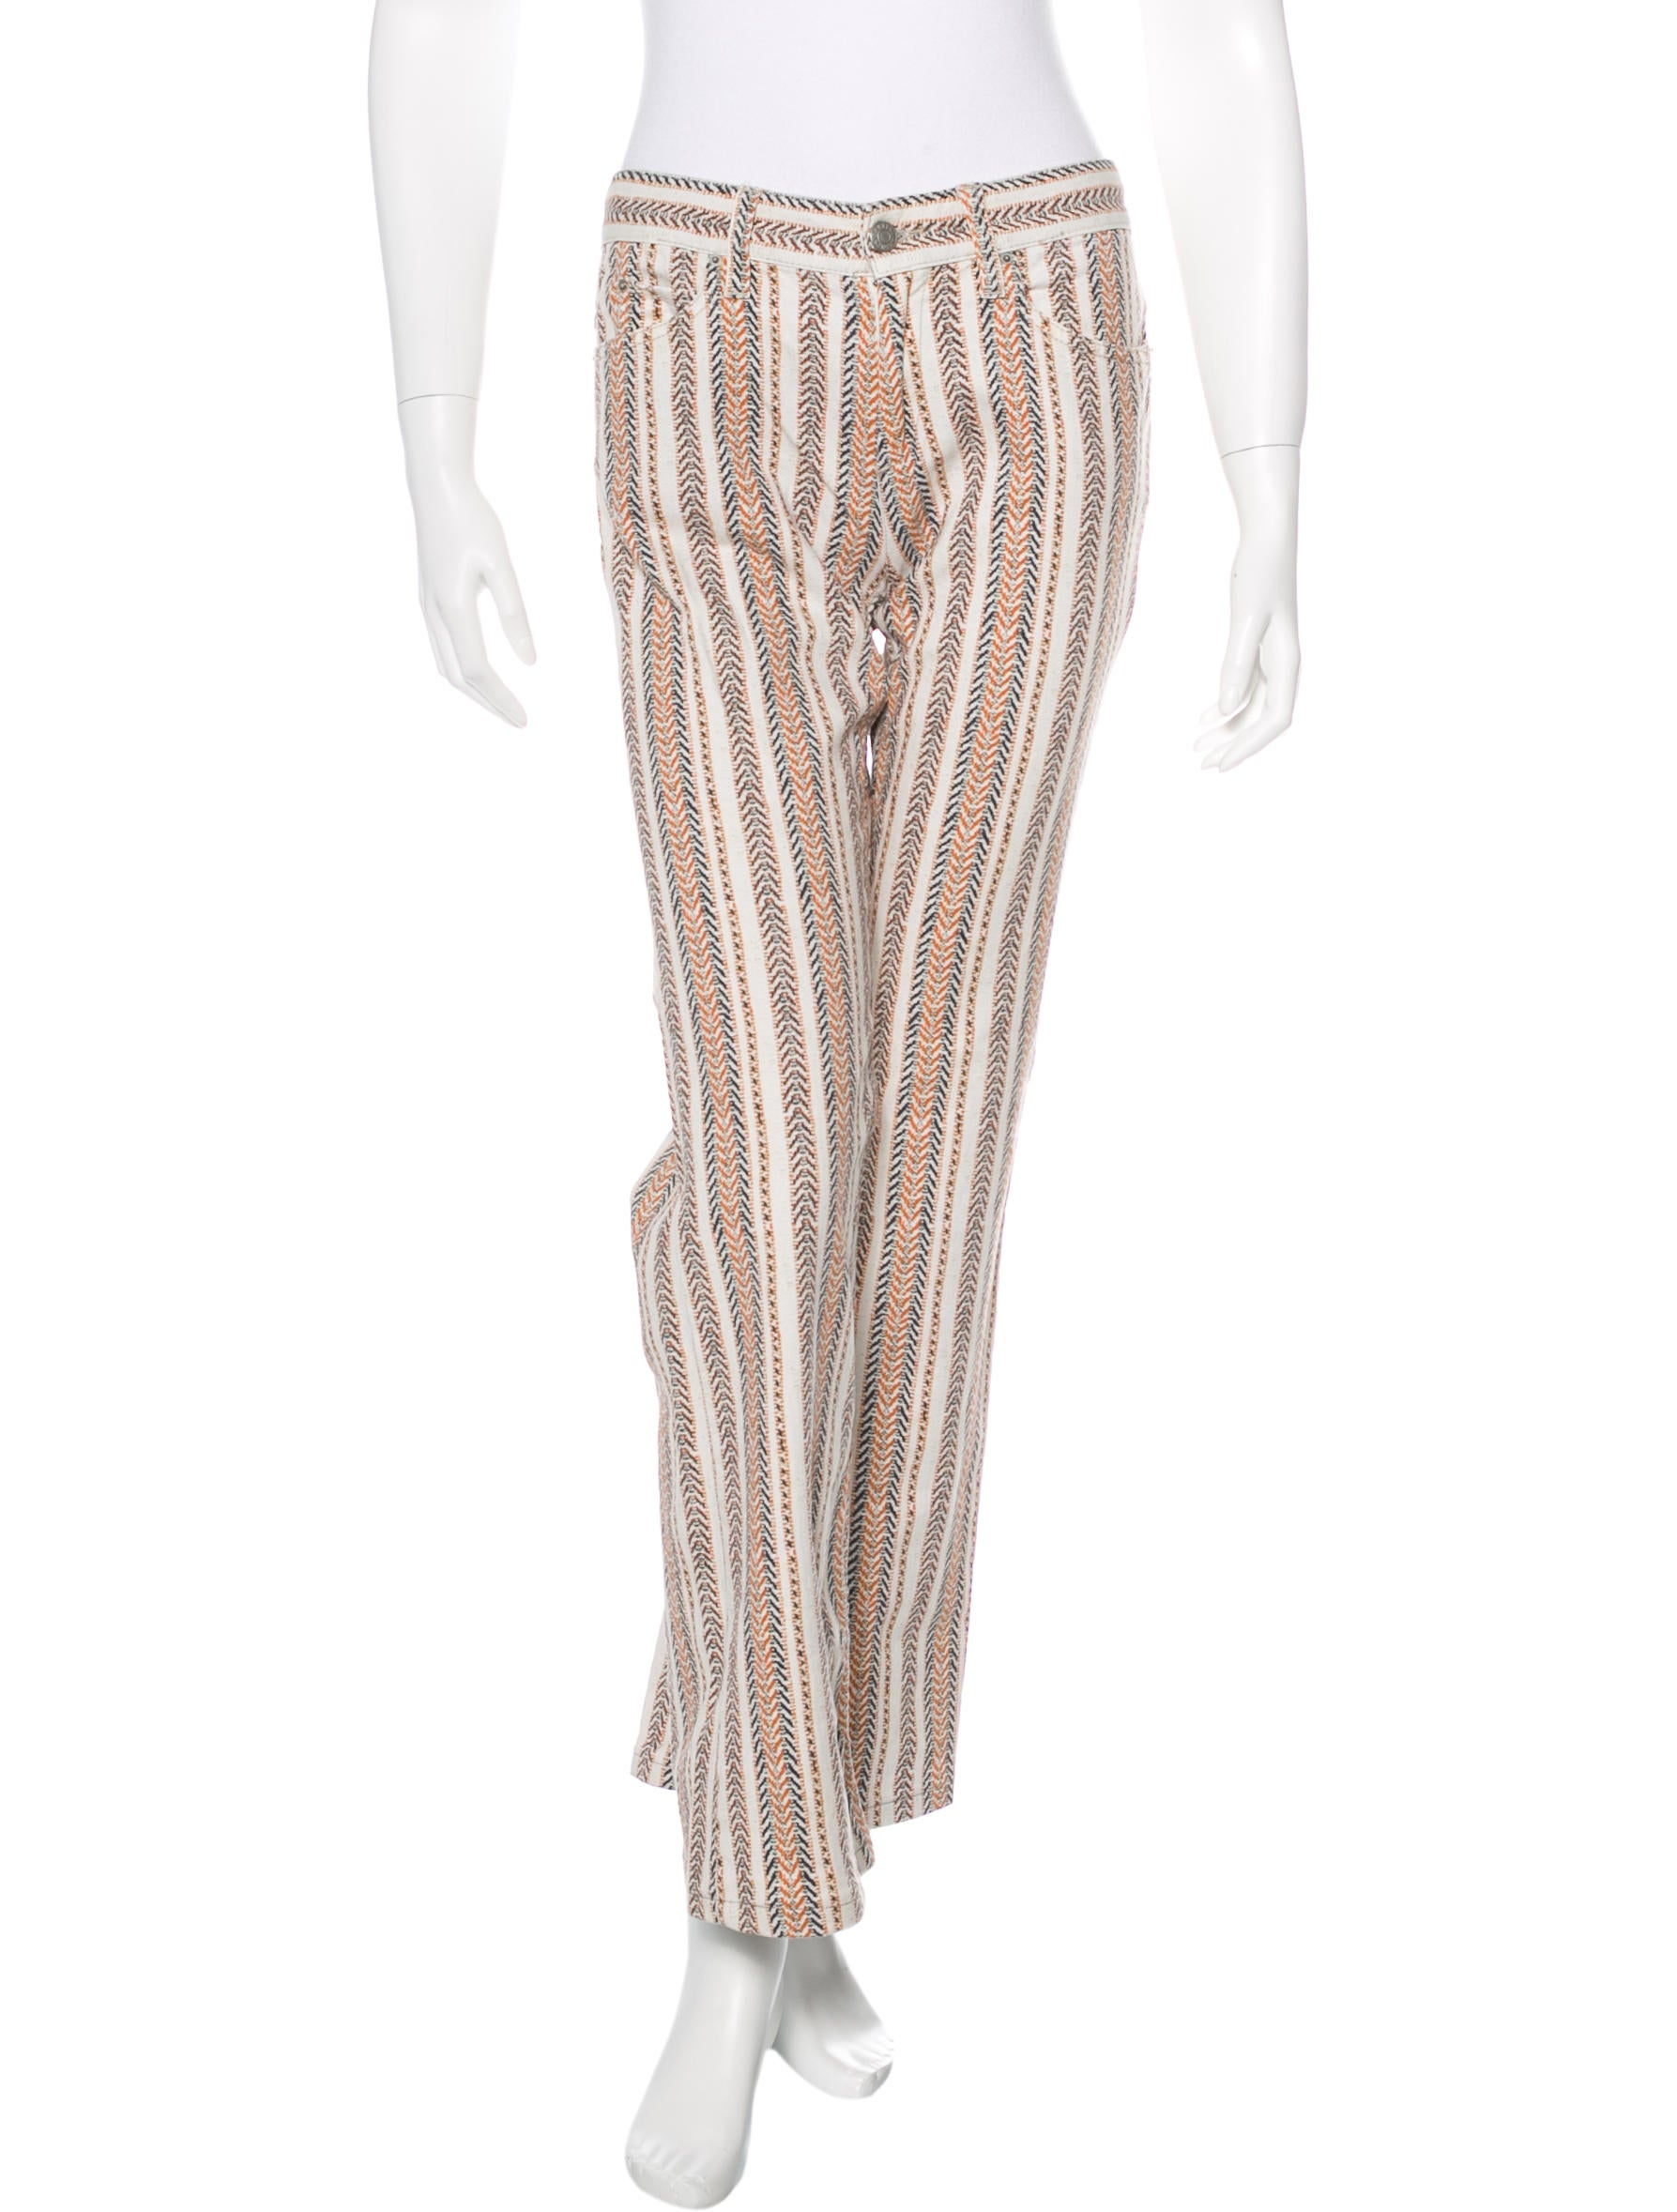 CeCe Printed Wide-Leg Pants Limited-Time Special $ Sale $ Free ship at $ Enjoy Free Shipping at $49! See exclusions. Free ship at $ more like this. Verona Collection Printed Wide-Leg Pants Limited-Time Special.